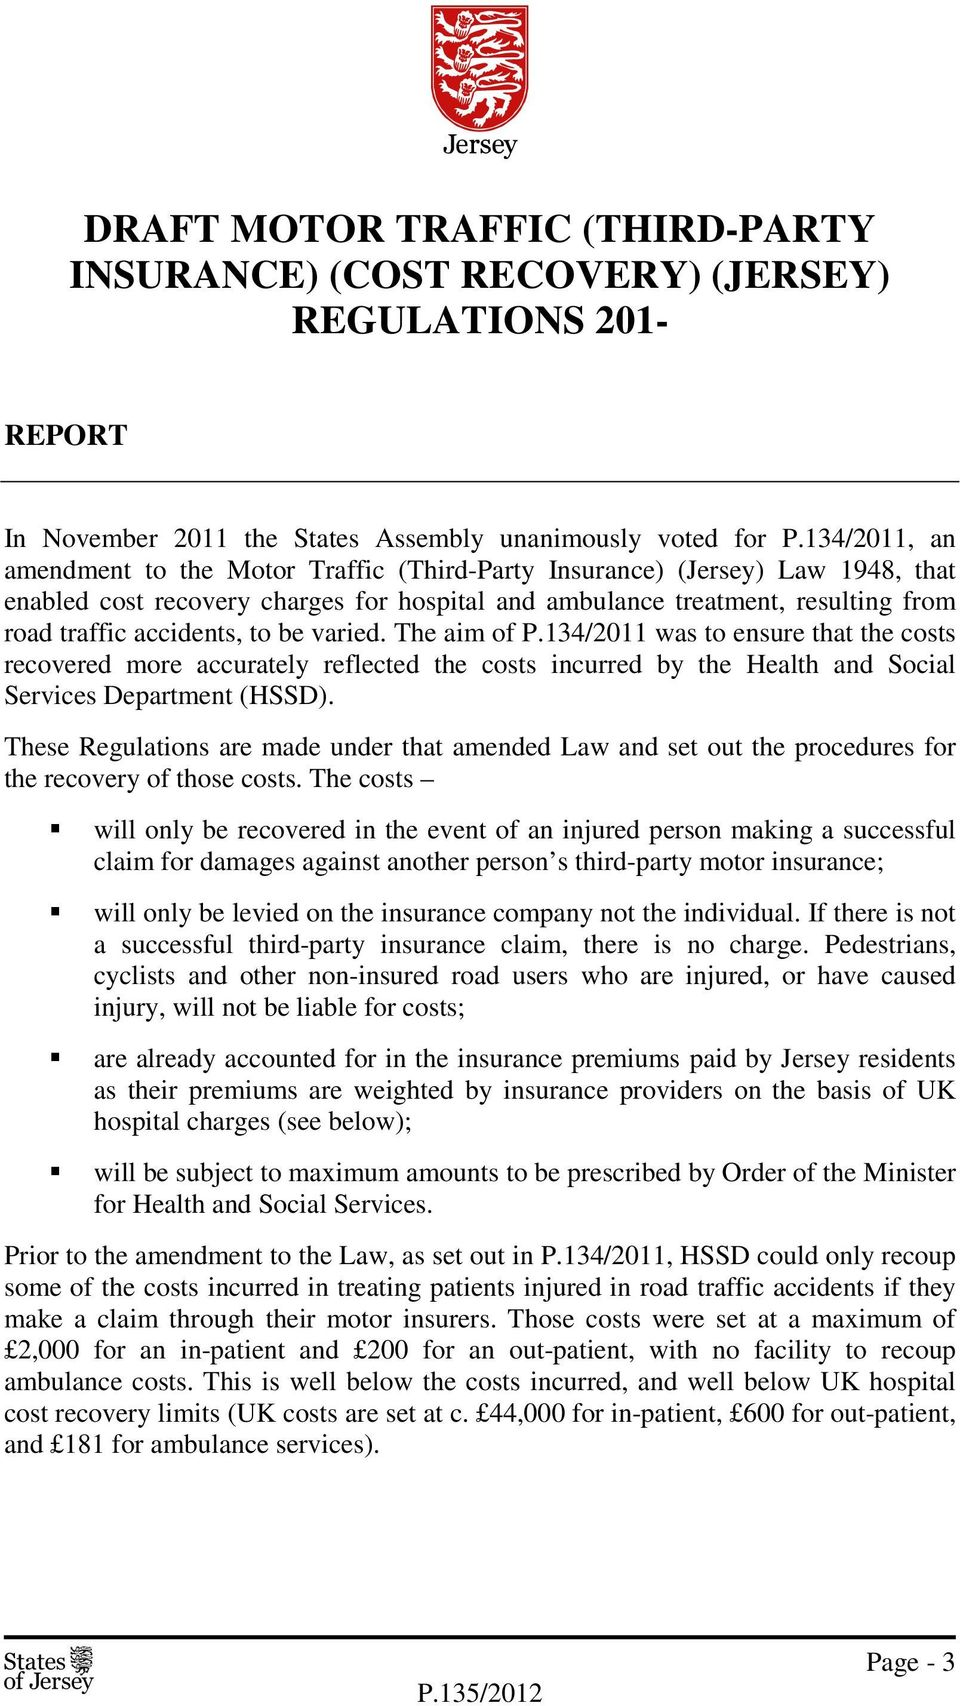 to be varied. The aim of P.134/2011 was to ensure that the costs recovered more accurately reflected the costs incurred by the Health and Social Services Department (HSSD).